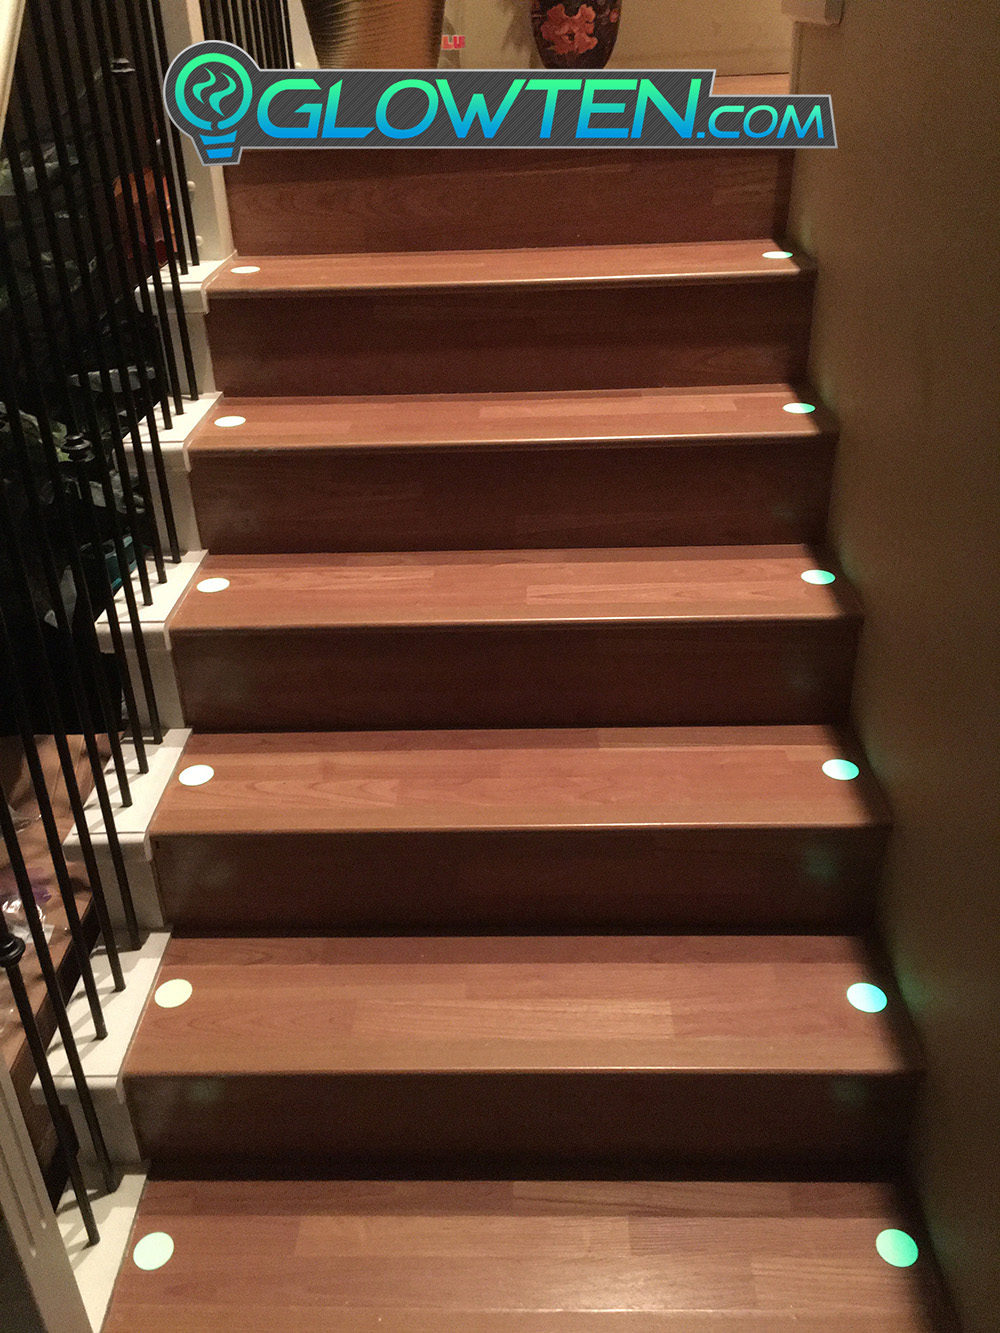 GLOWTEN.com - CIRCLE PLAQUE Glow in the Dark Stairs Guide Sign Directional Sticker Round Eco Friendly Photoluminescent Material Aluminum Body pic 4 picture photo cap preview pic 4